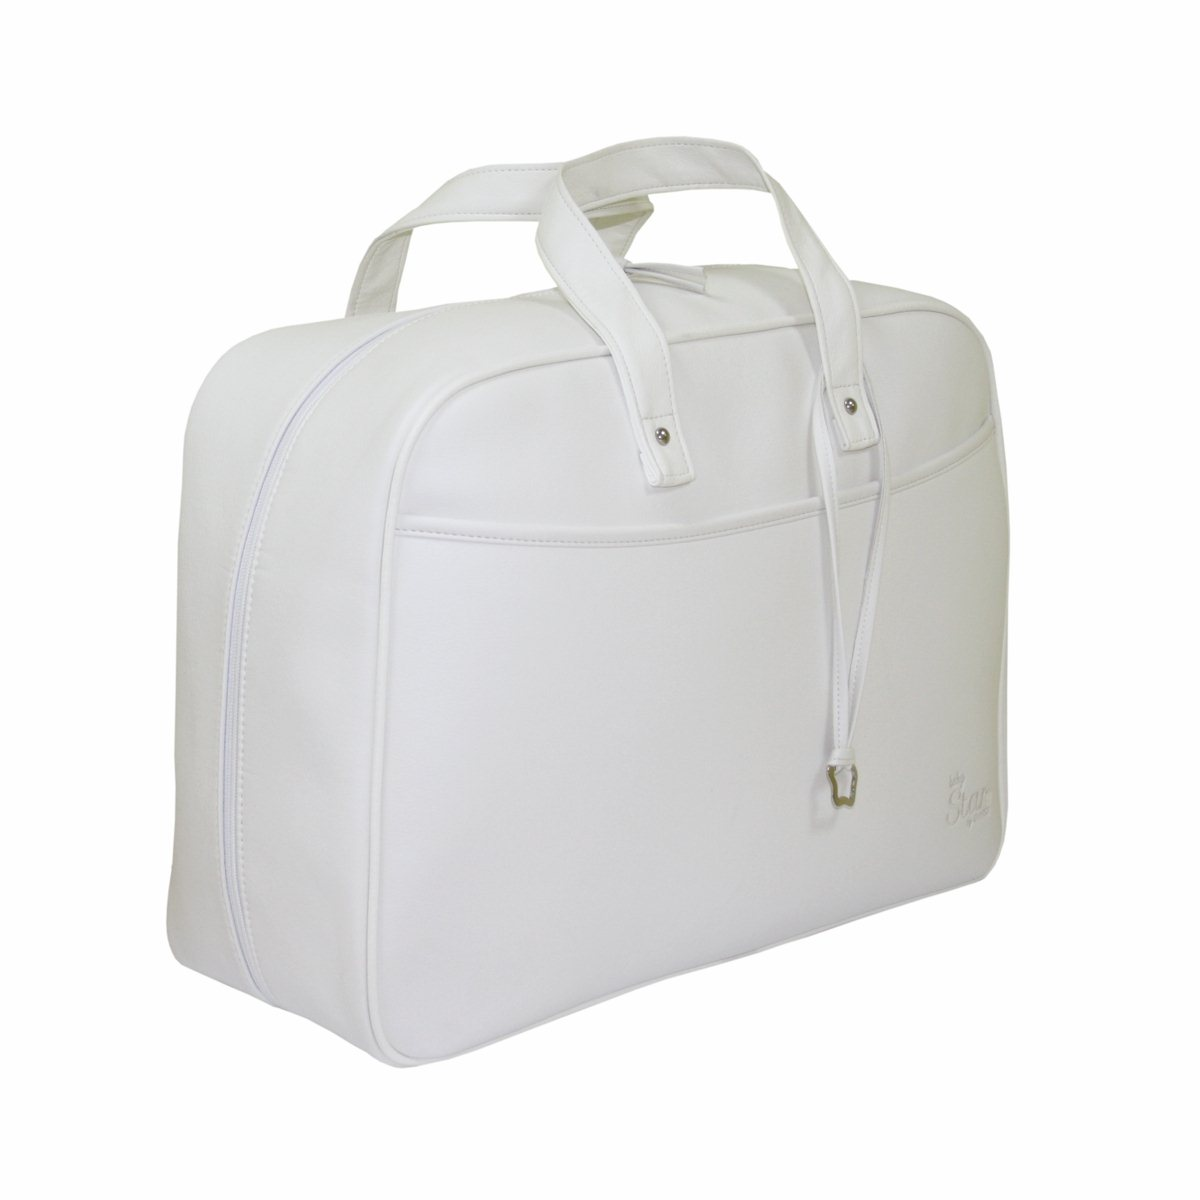 a35793d20 bolso-maternal-hospital-bebe-blanco-(3)